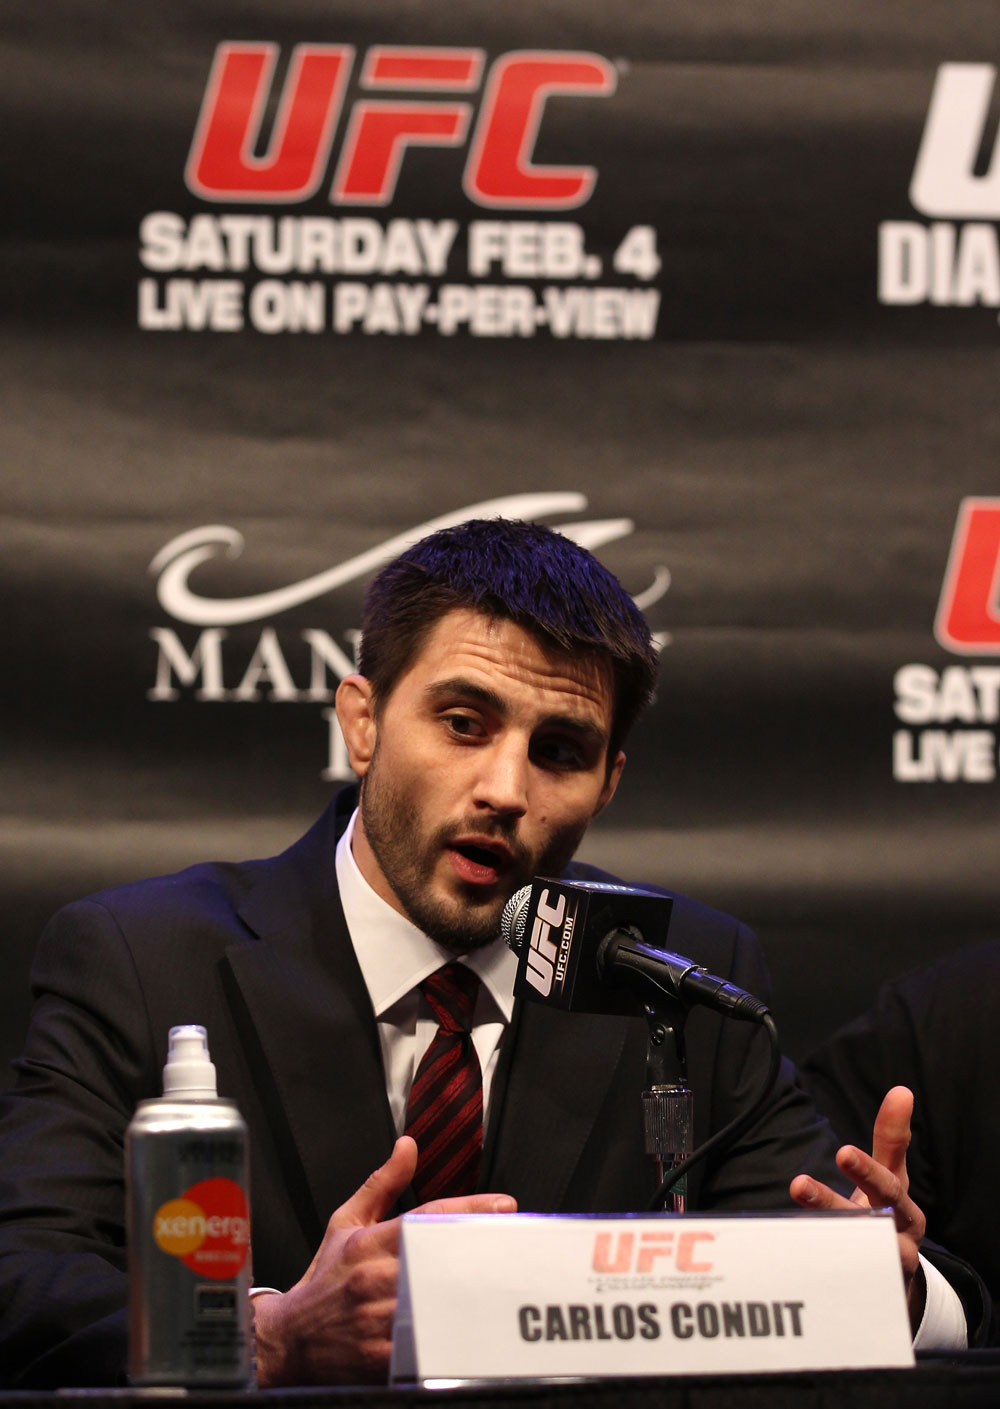 LAS VEGAS, NV - FEBRUARY 02:  Carlos Condit attends the UFC 143 final pre-fight press conference at the Mandalay Bay Hotel & Casino on February 2, 2012 in Las Vegas, United States.  (Photo by Josh Hedges/Zuffa LLC/Zuffa LLC via Getty Images) *** Local Caption *** Carlos Condit